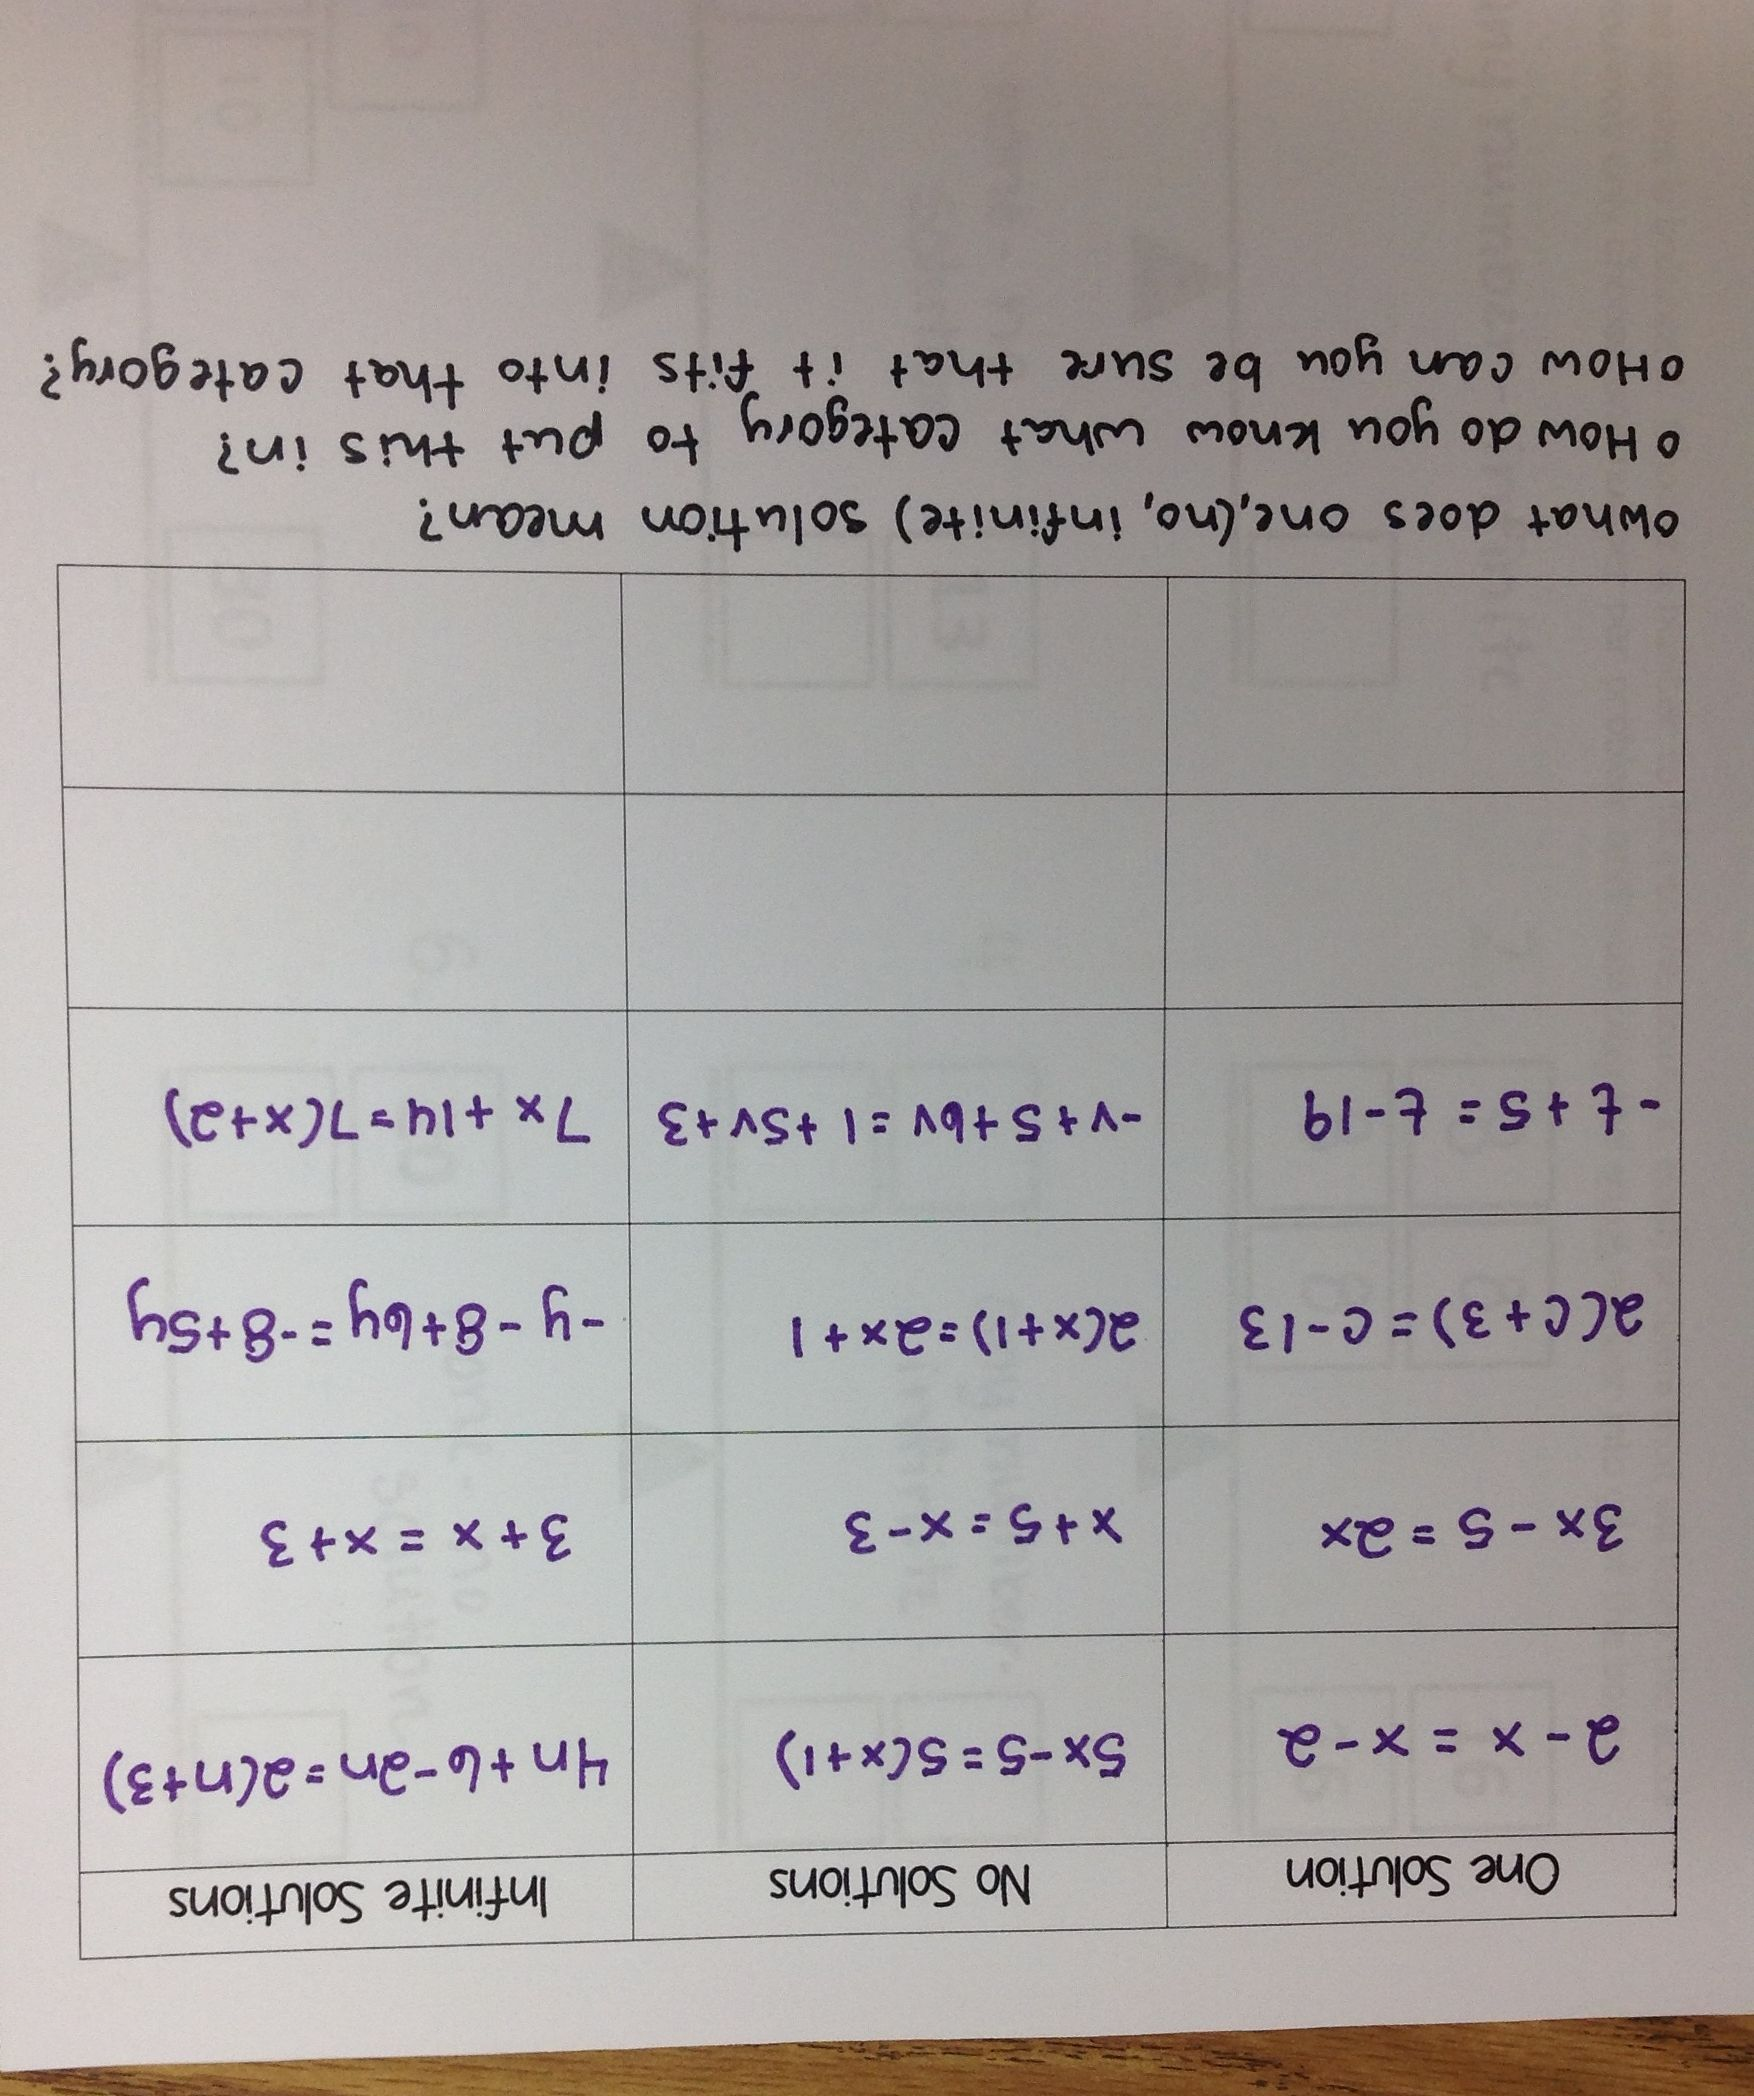 5 Solving Equations And Inequalities Worksheet In 2020 Solving Equations Word Problem Worksheets Graphing Inequalities